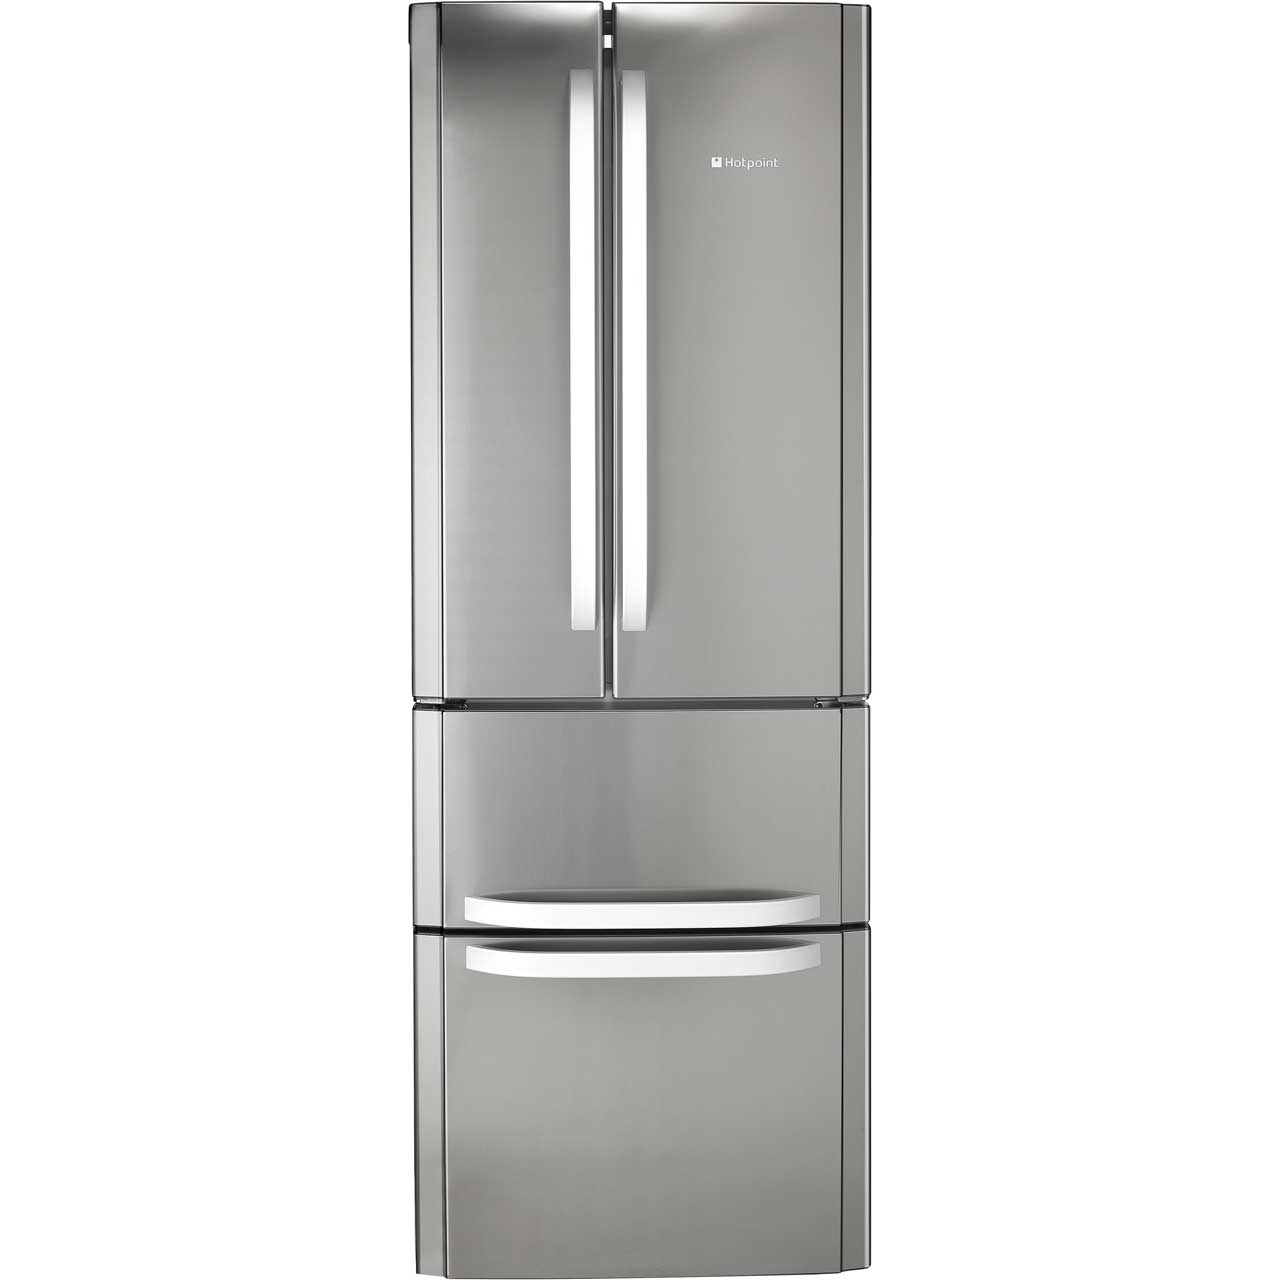 Hotpoint FFU4DX Free Standing Fridge Freezer Frost Free in Stainless Steel